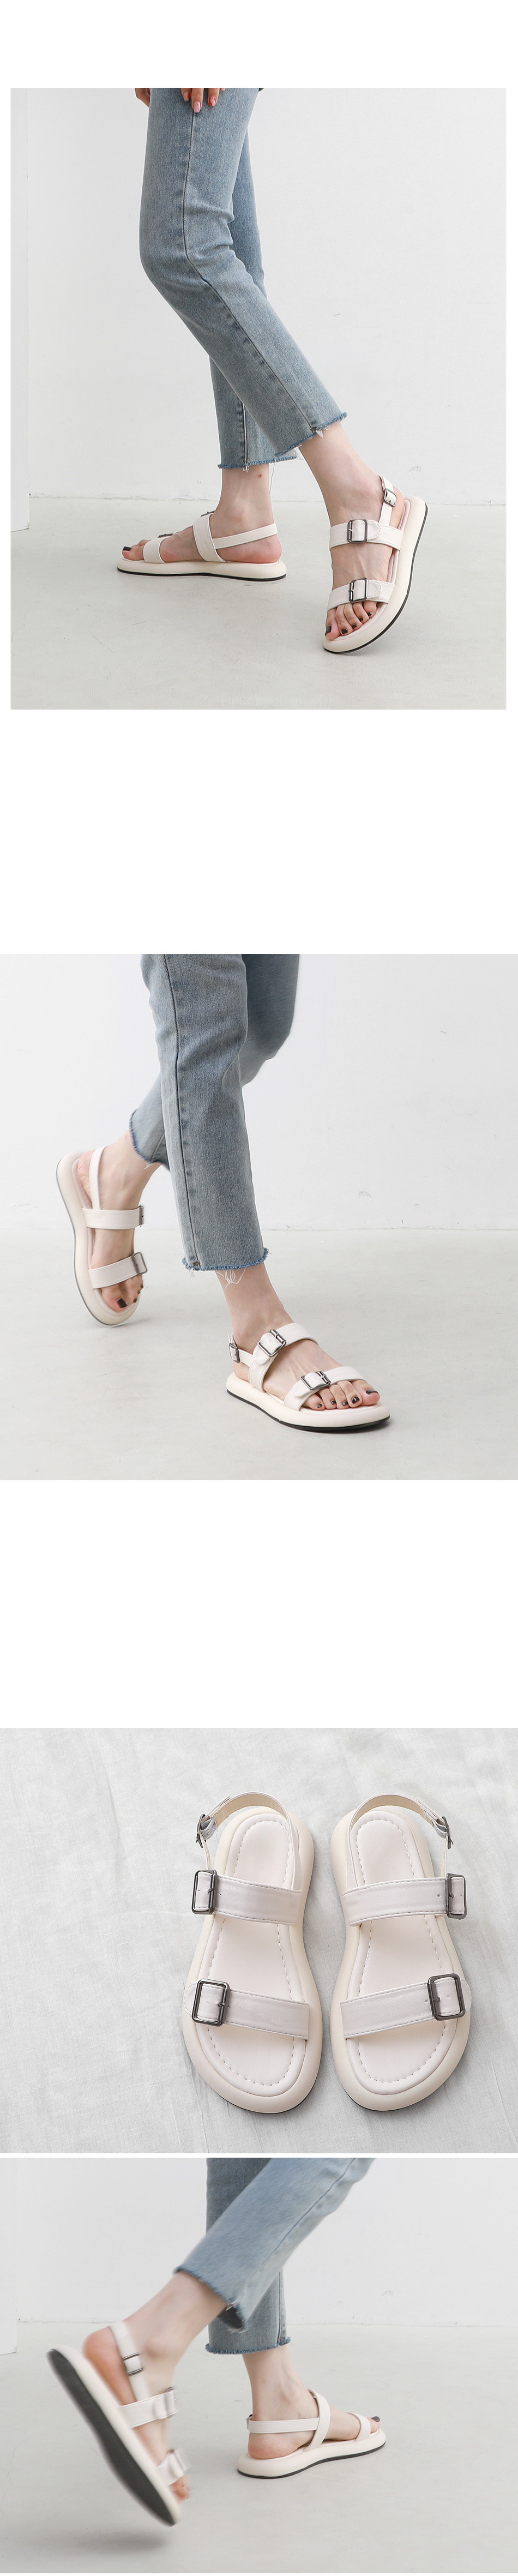 Round Oversole Double Buckle Strap Sling Bag Whole Heel Sandals 11006